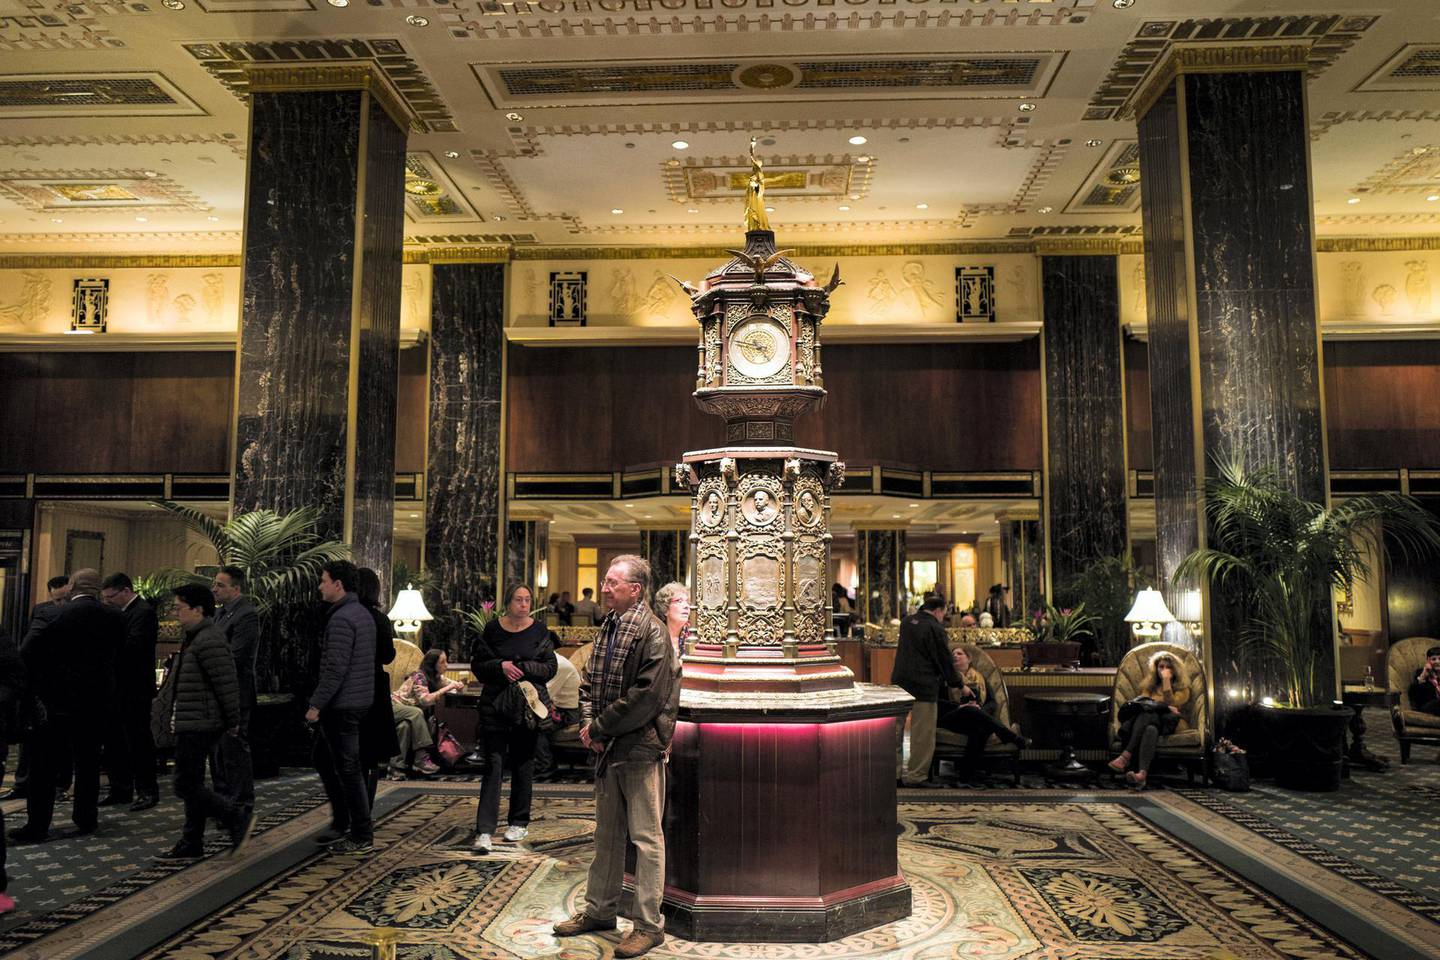 NEW YORK, NY - FEBRUARY 28: A view of the main lobby at the Waldorf Astoria Hotel, February 28, 2017 in New York City. The iconic hotel, which opened in 1931, will close on Wednesday for a two-year renovation that will transform it into a smaller hotel with condo units. (Photo by Drew Angerer/Getty Images)